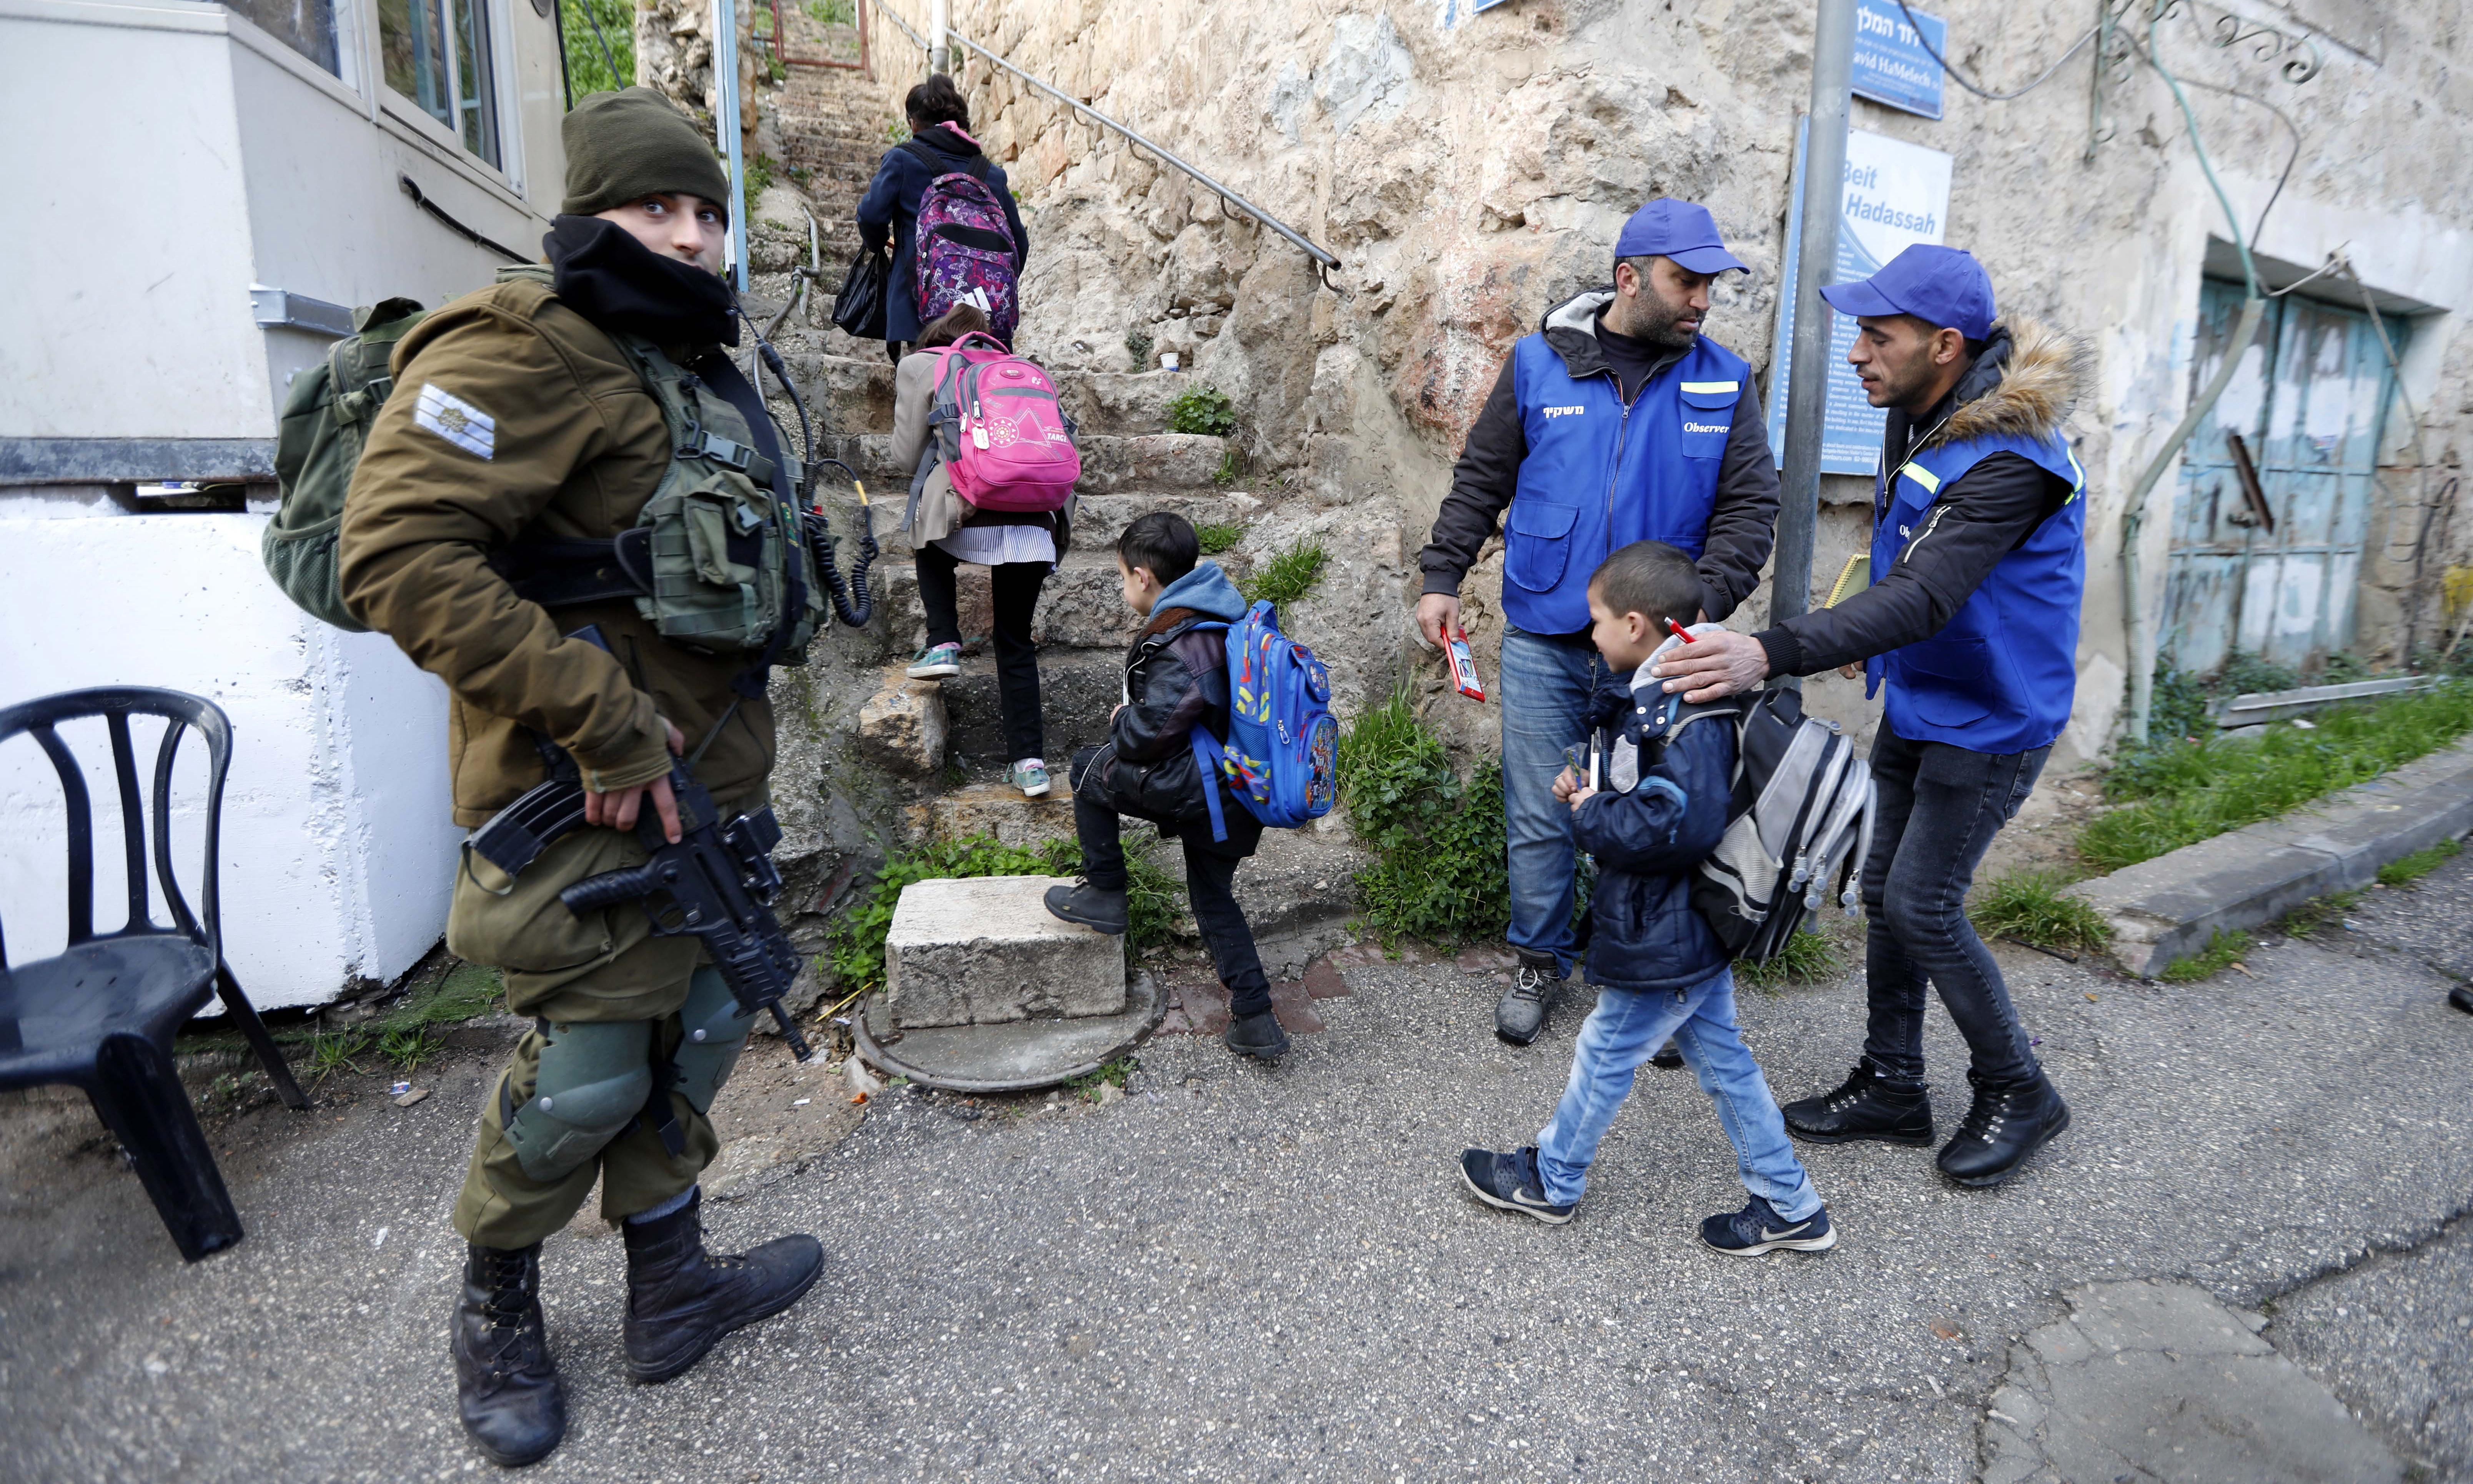 Palestinians patrol Hebron after Israel ejects foreign peacekeepers